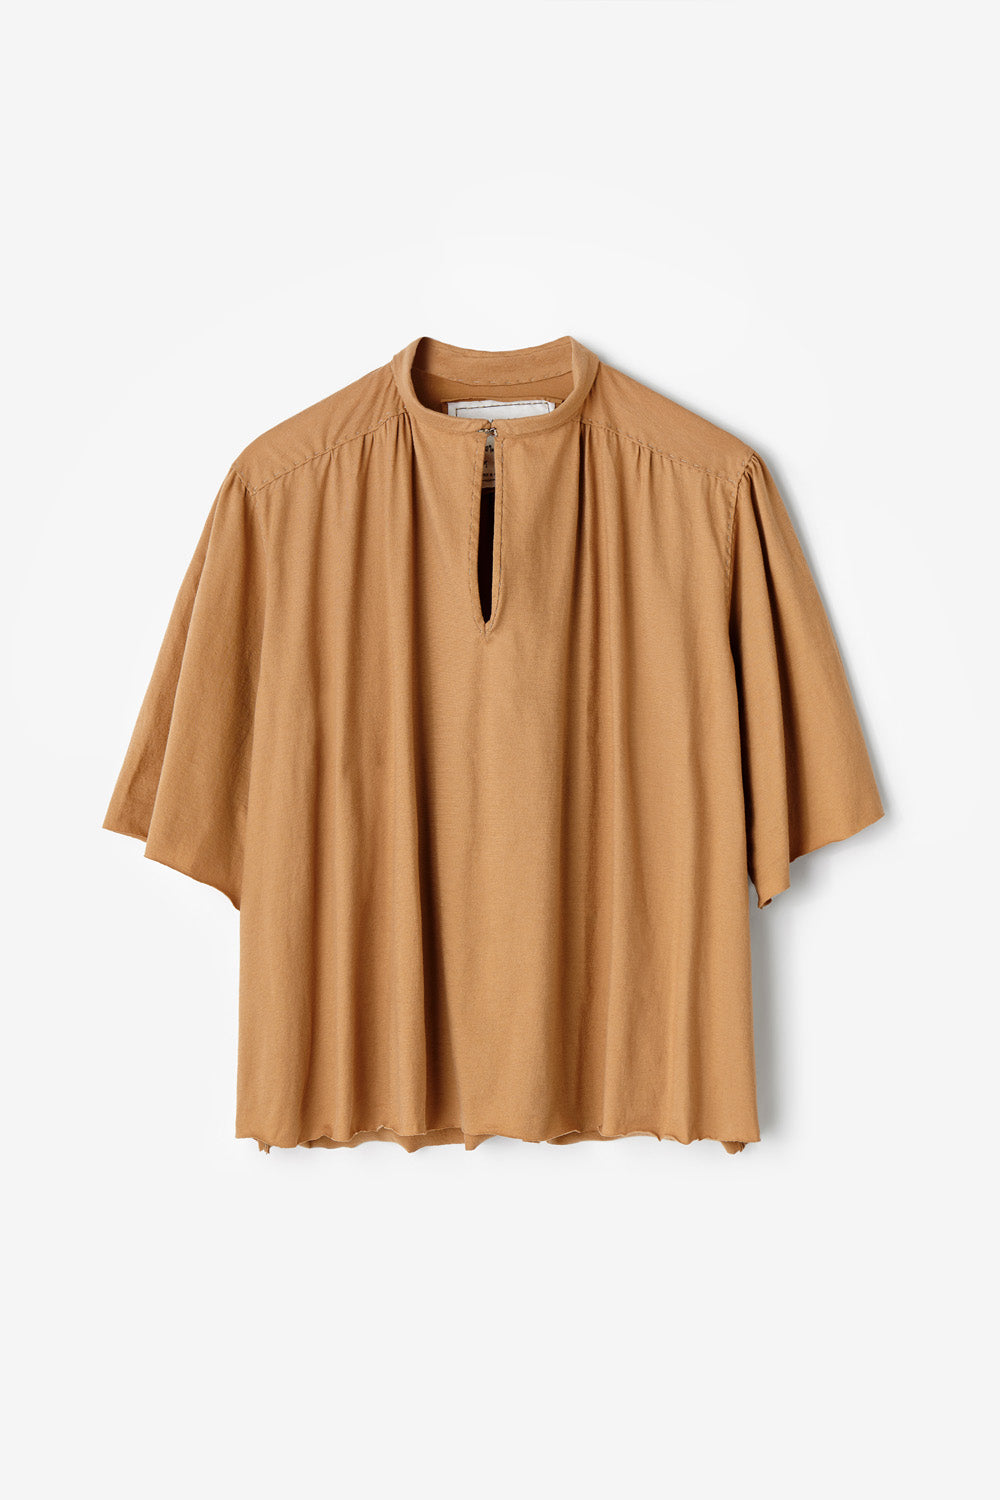 Alabama Chanin Ines Top with Dolman Sleeve Hand-Sewn in Camel